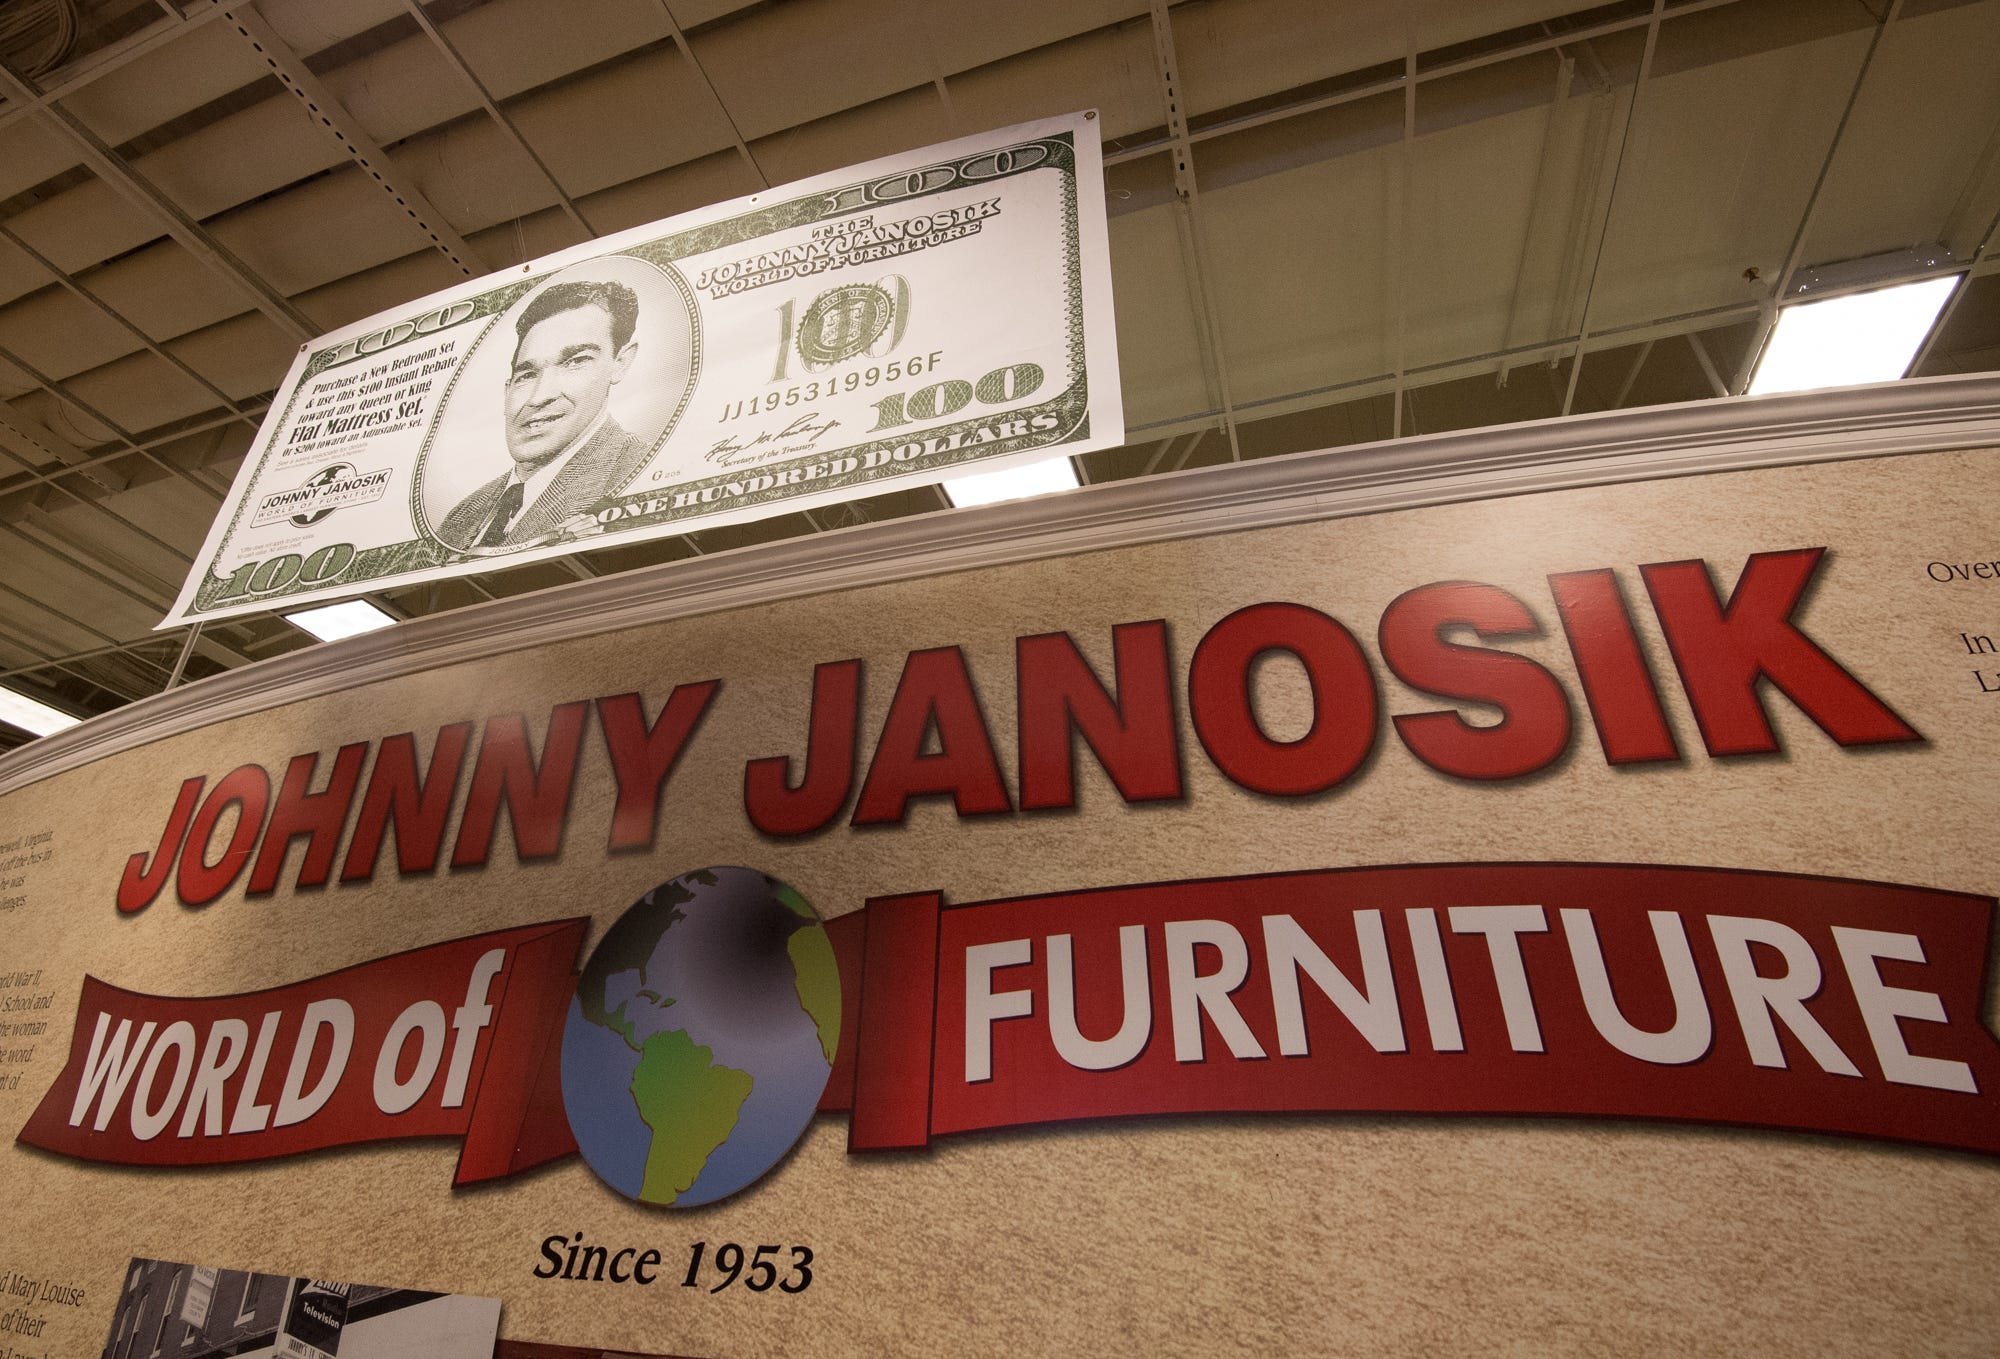 Ordinaire The Johnny Janosik World Of Furniture Store In Laurel